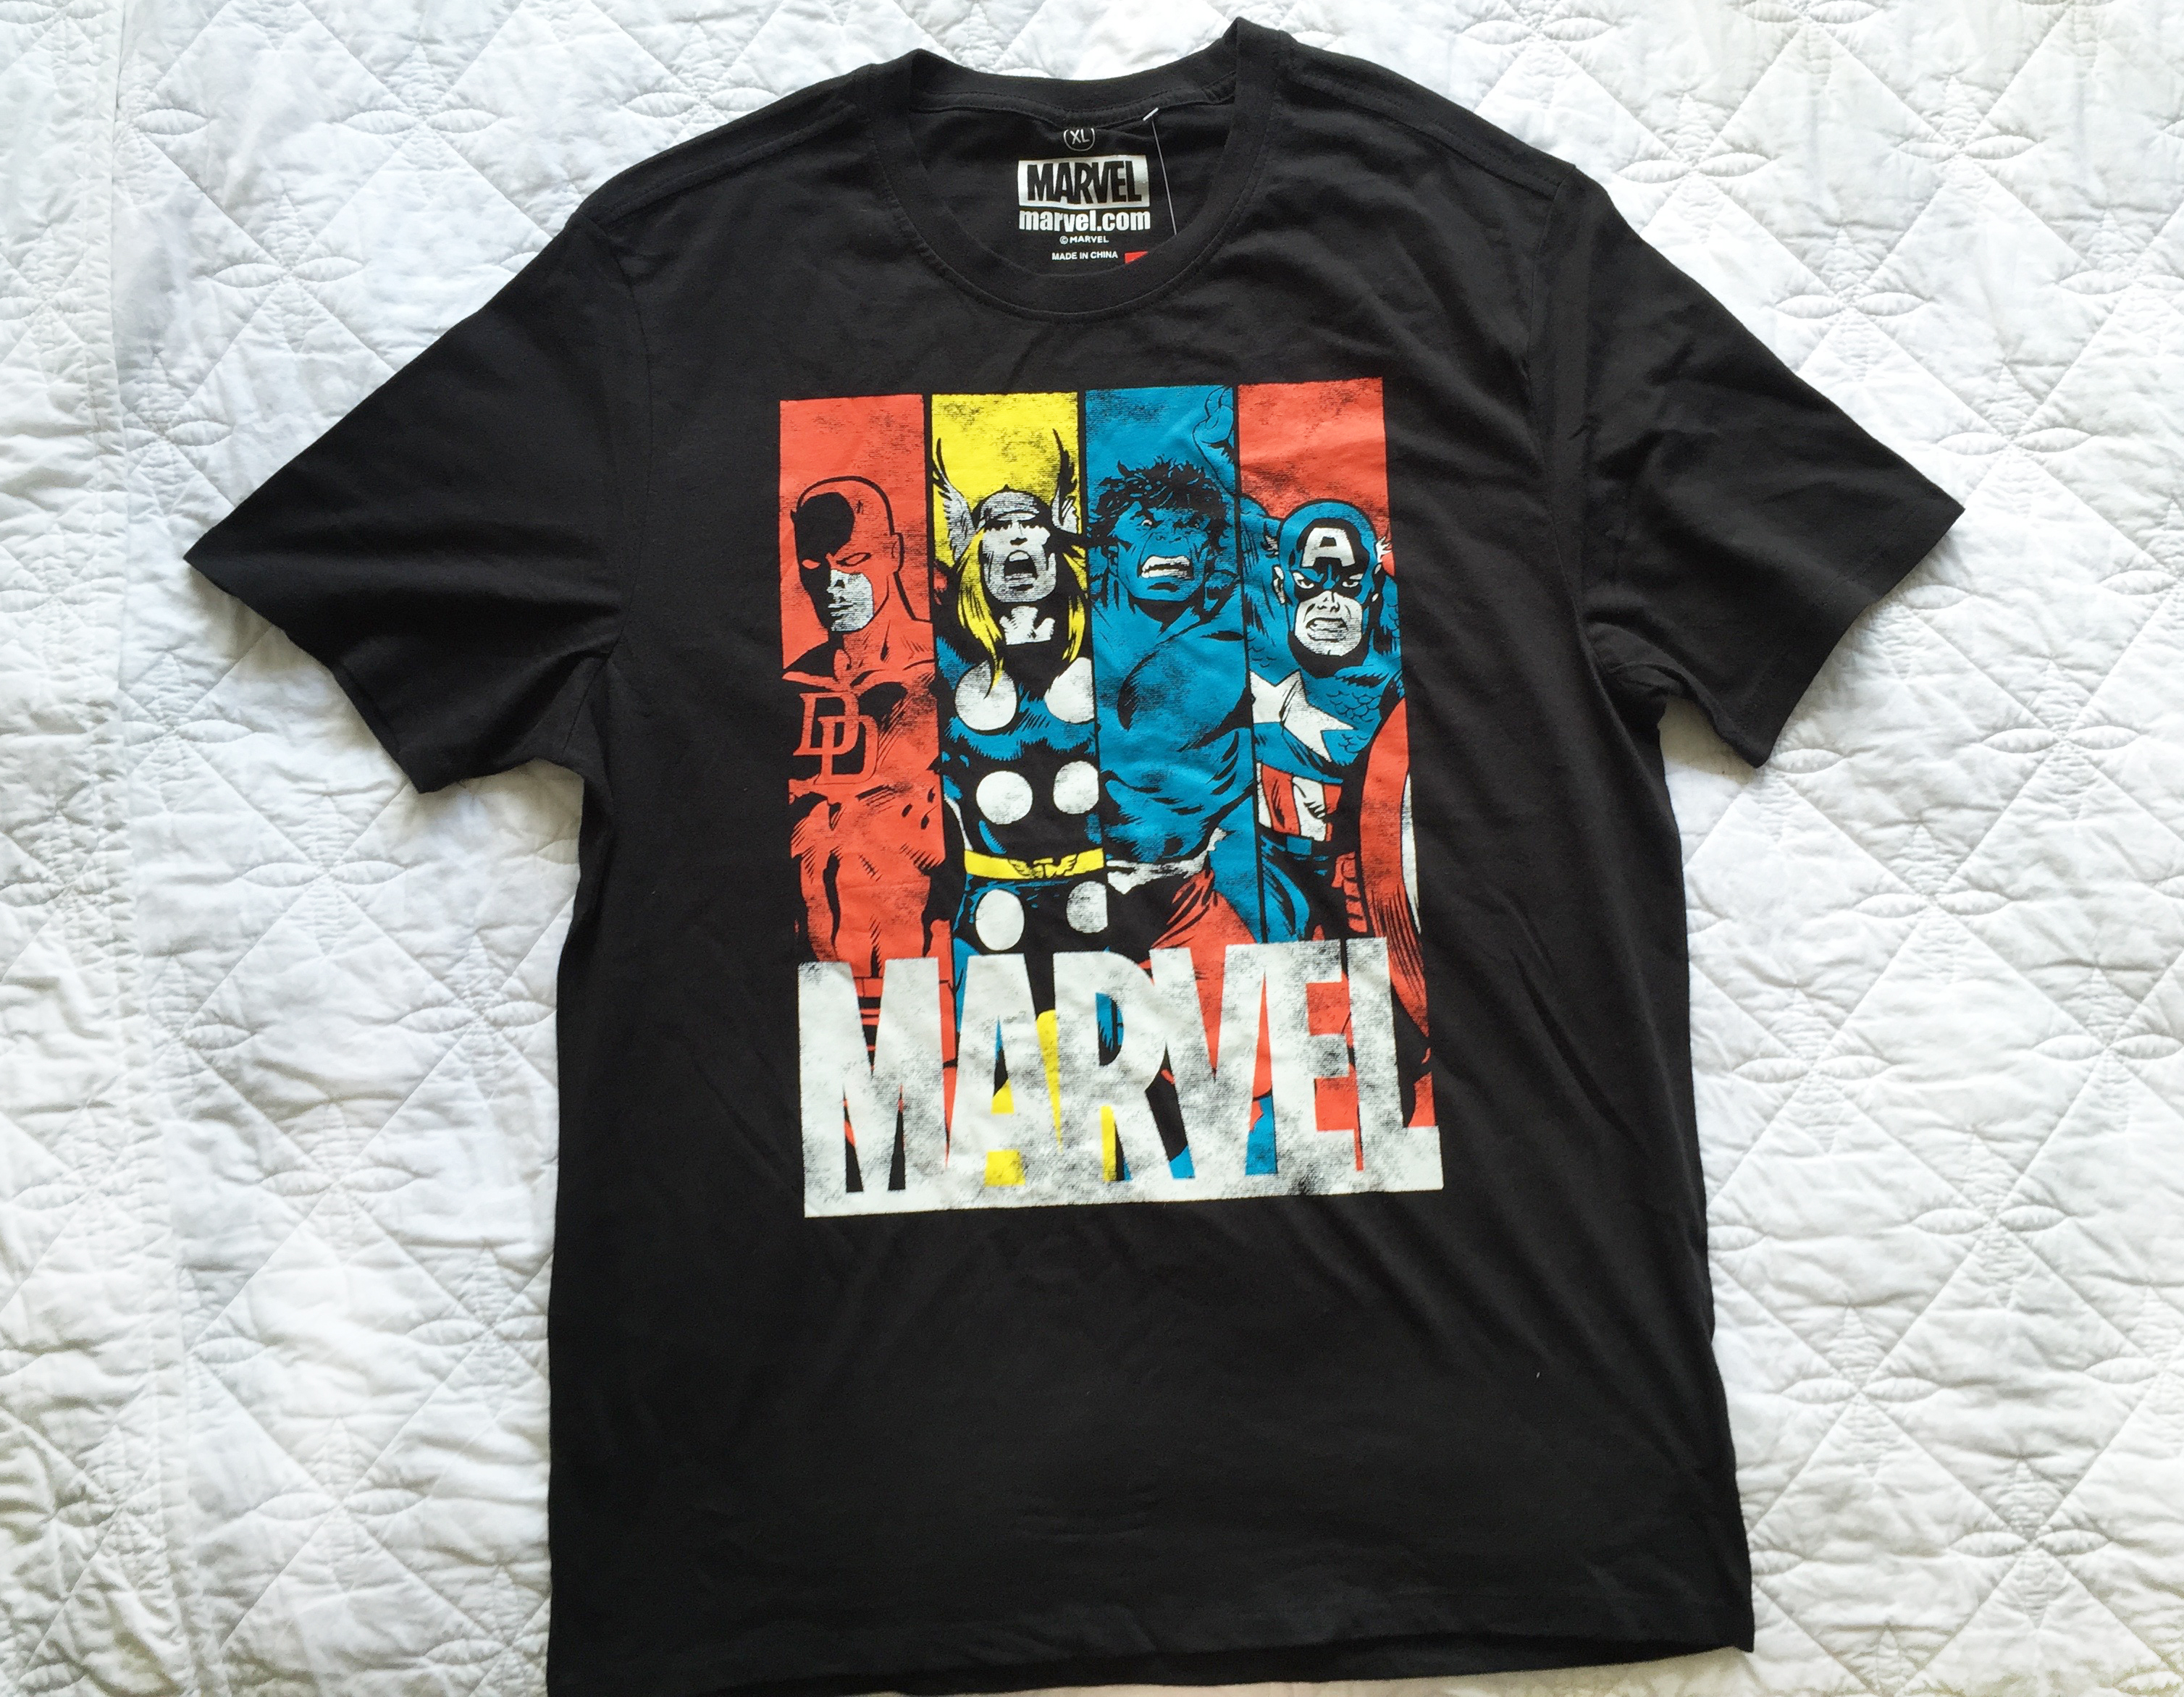 MARVEL tshirt from Kmart